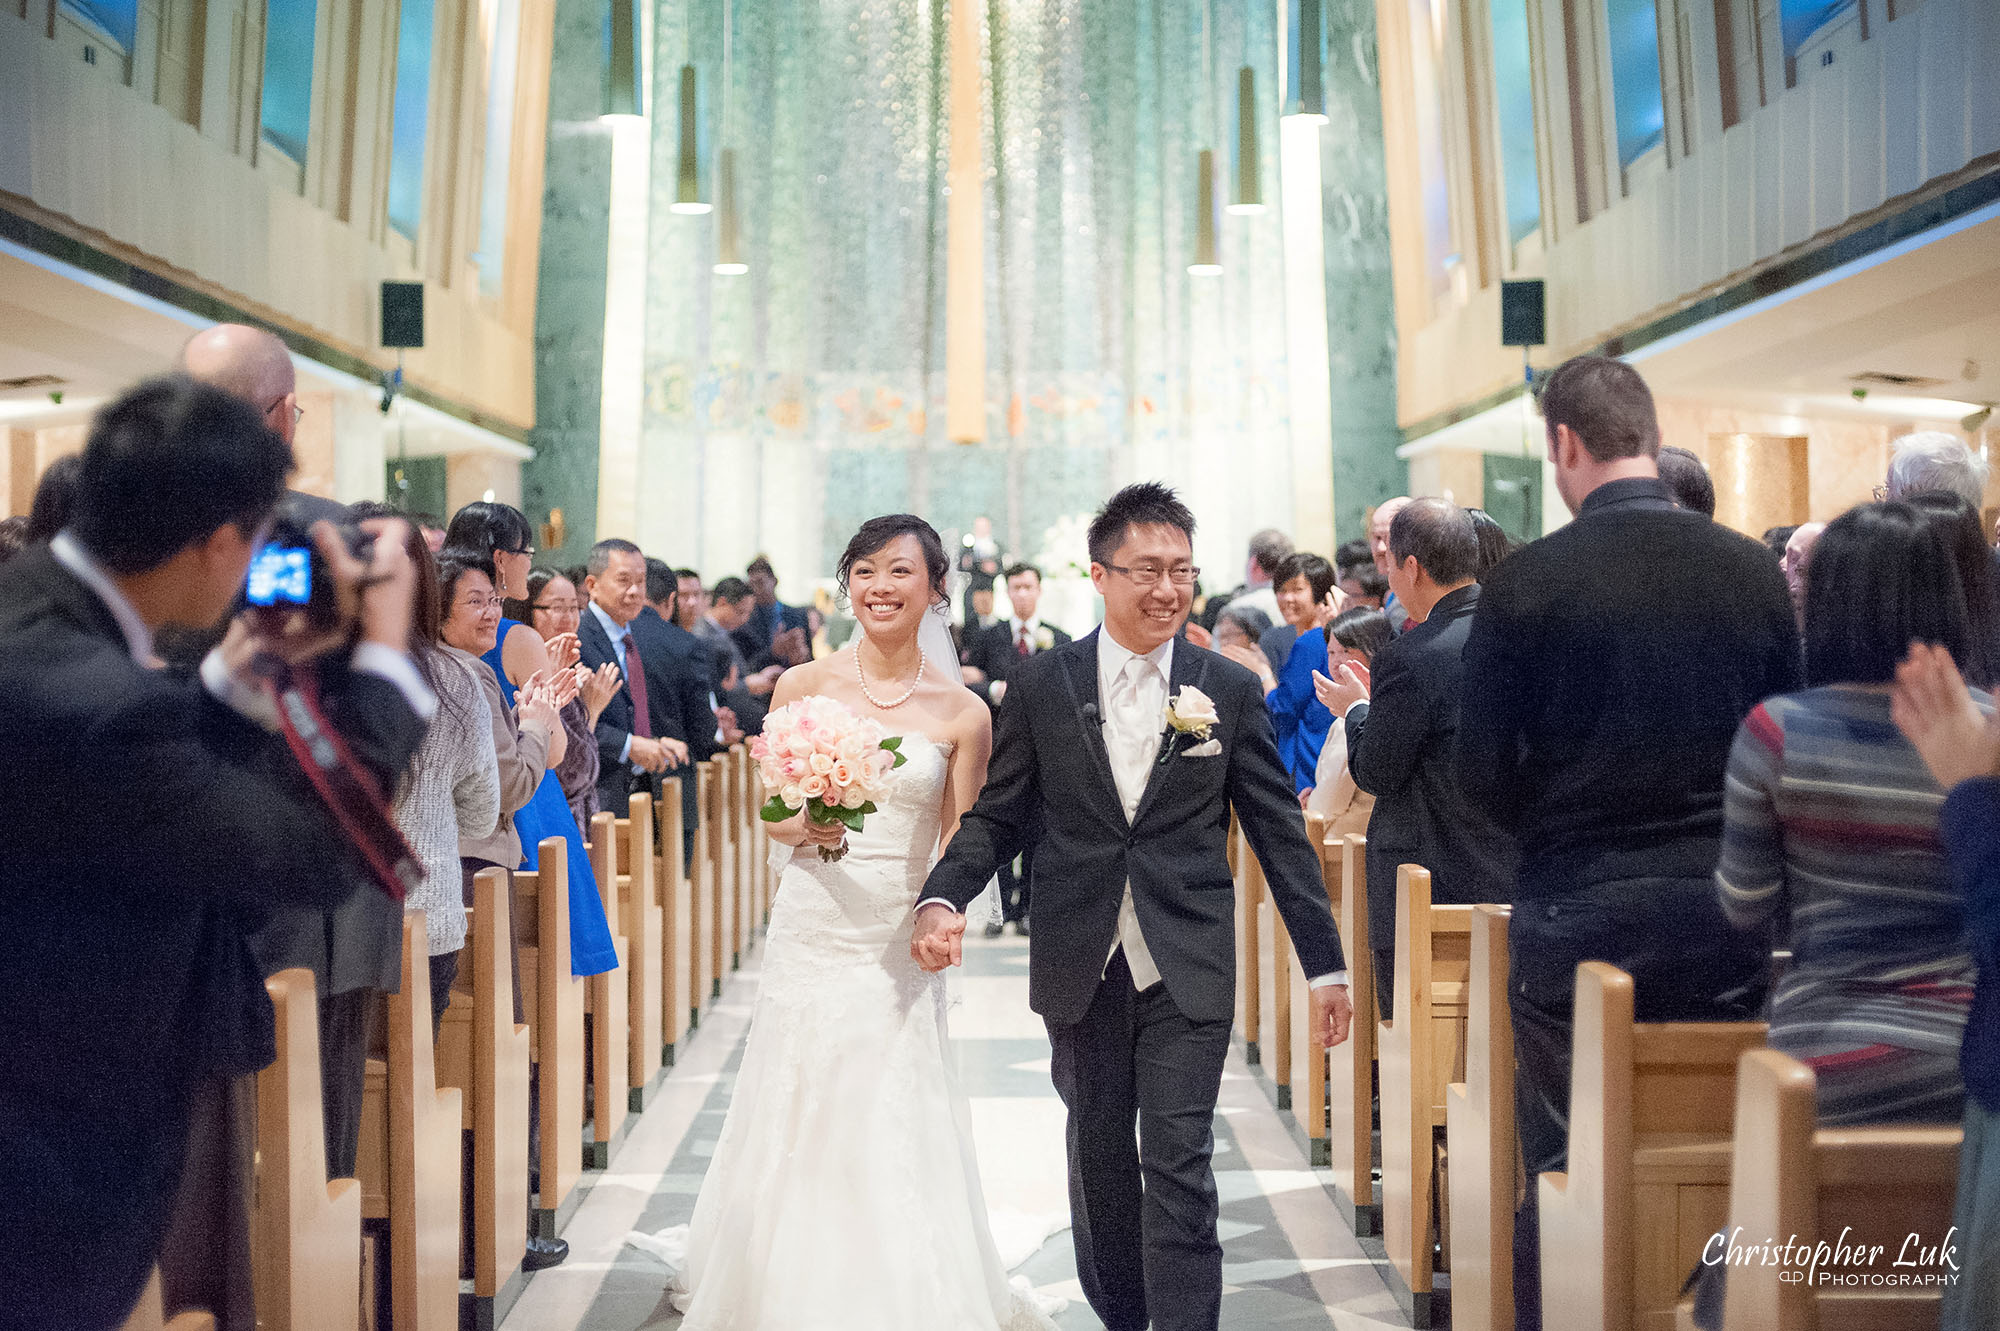 Christopher Luk Toronto Wedding Photography Tyndale Chapel Church Ceremony Venue Location Bride Groom Altar Walking Down the Aisle Together Recessional